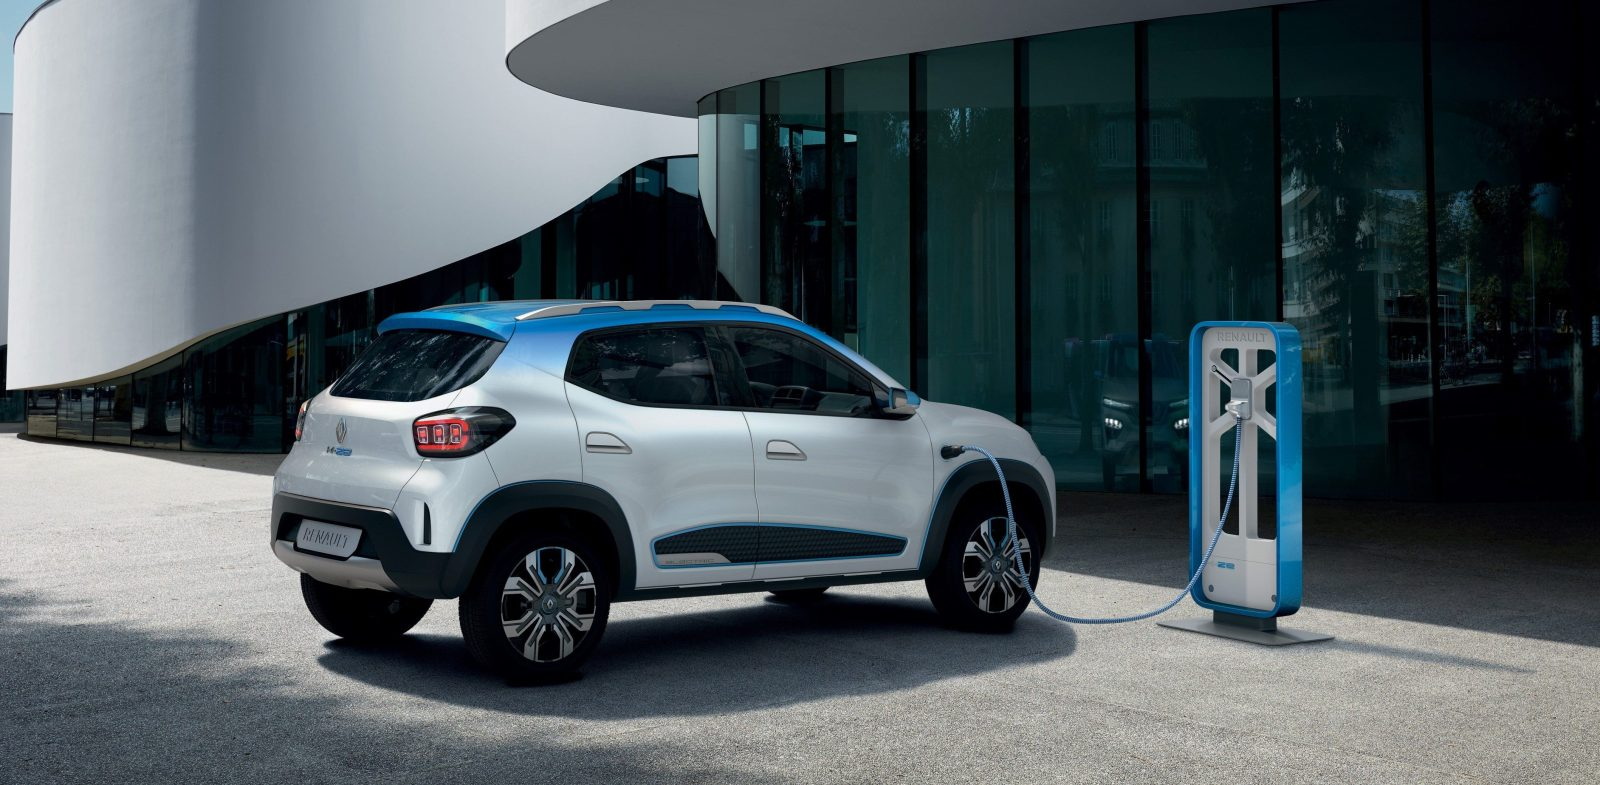 Renault unveils new 'affordable' K-ZE all-electric crossover